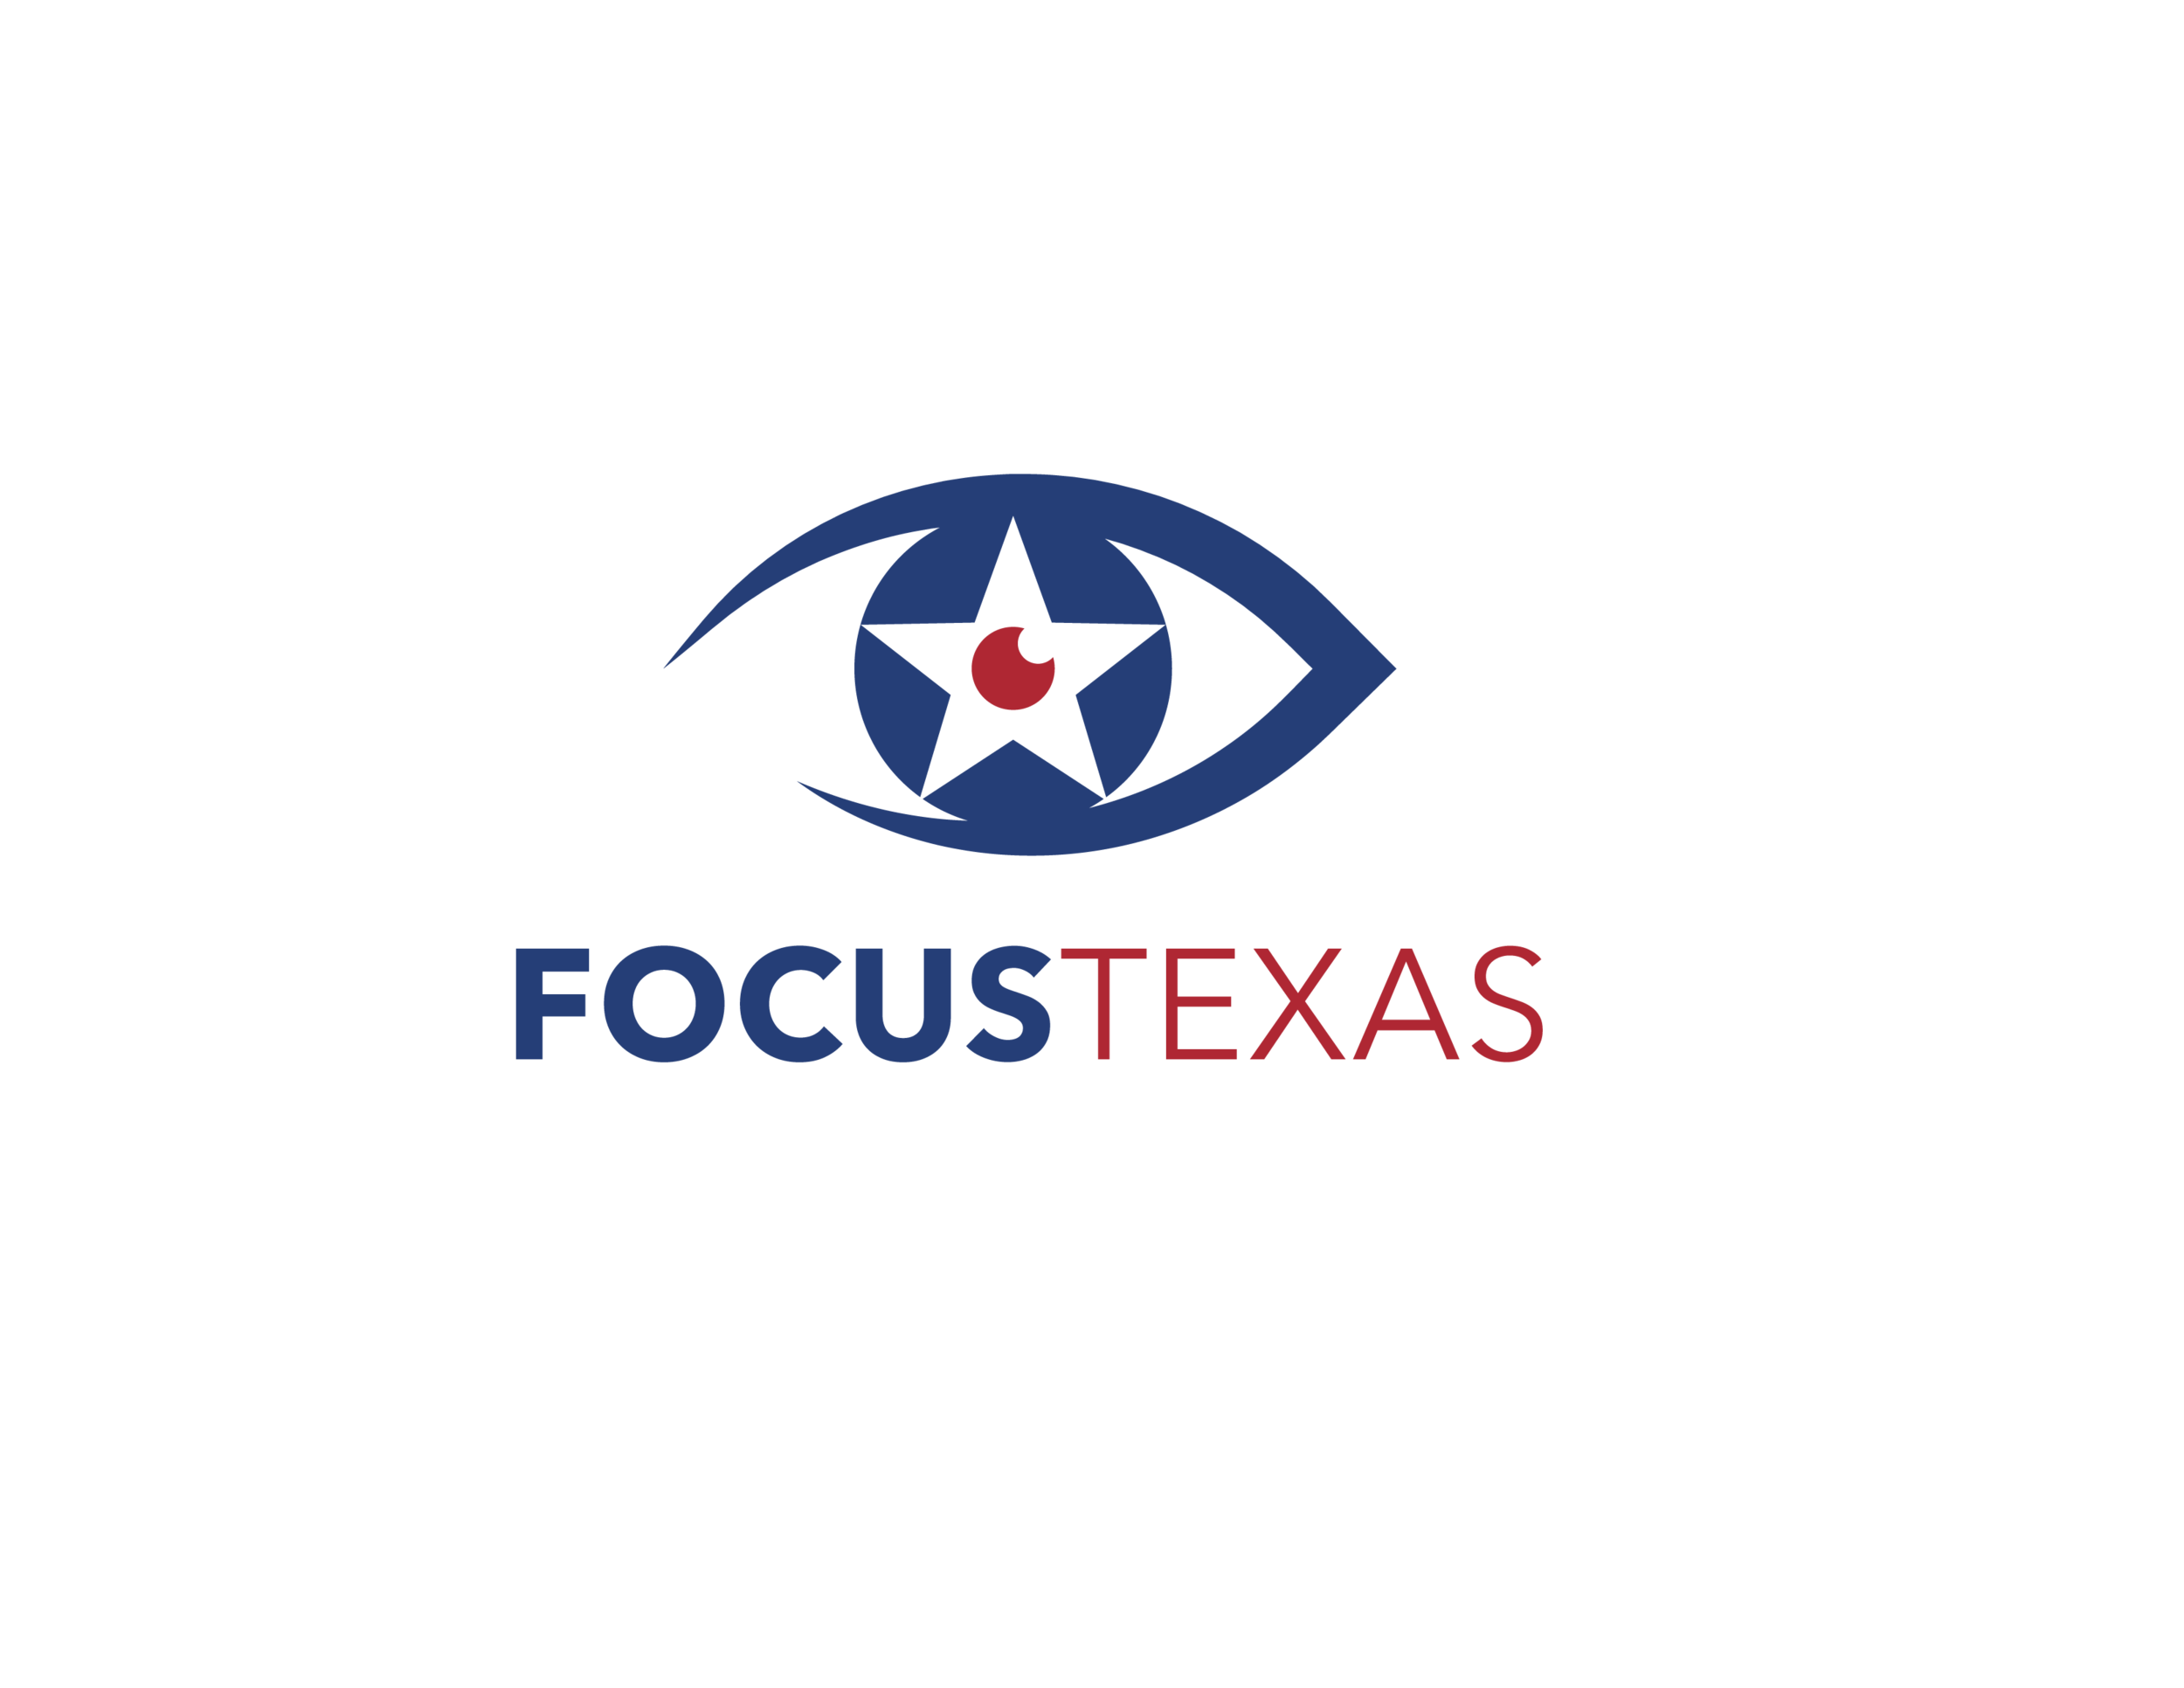 Focus Texas - no tagline-01.png